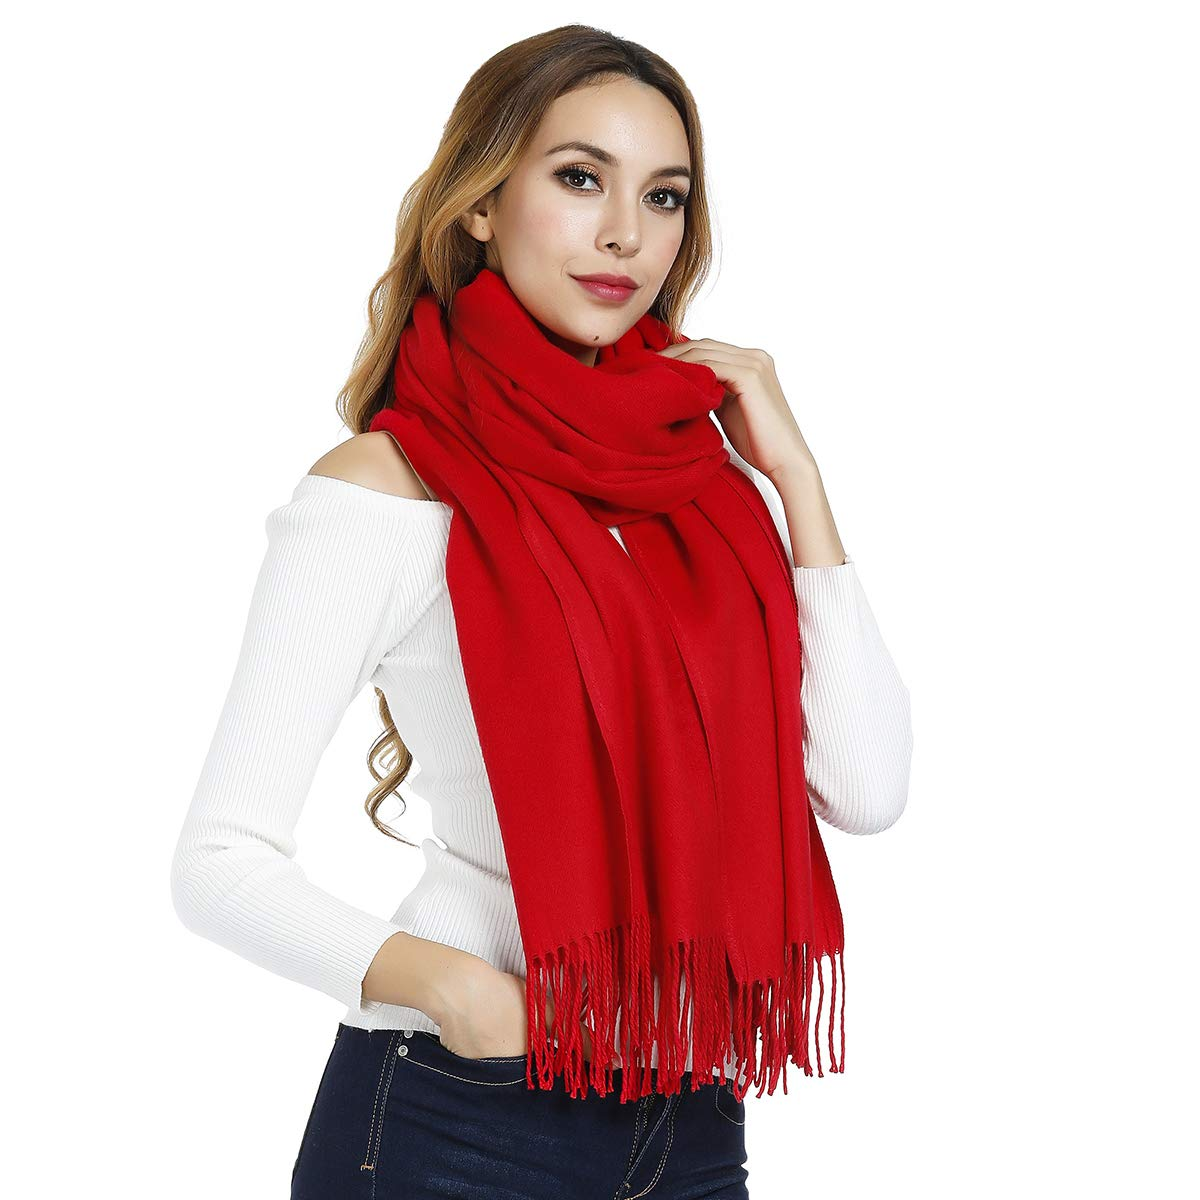 Large Cashmere Scarves for Women Men, Soft Thick Warm Shawls/Wraps in Winter, Ideal Gift, 80x27.5inch, Various Colors